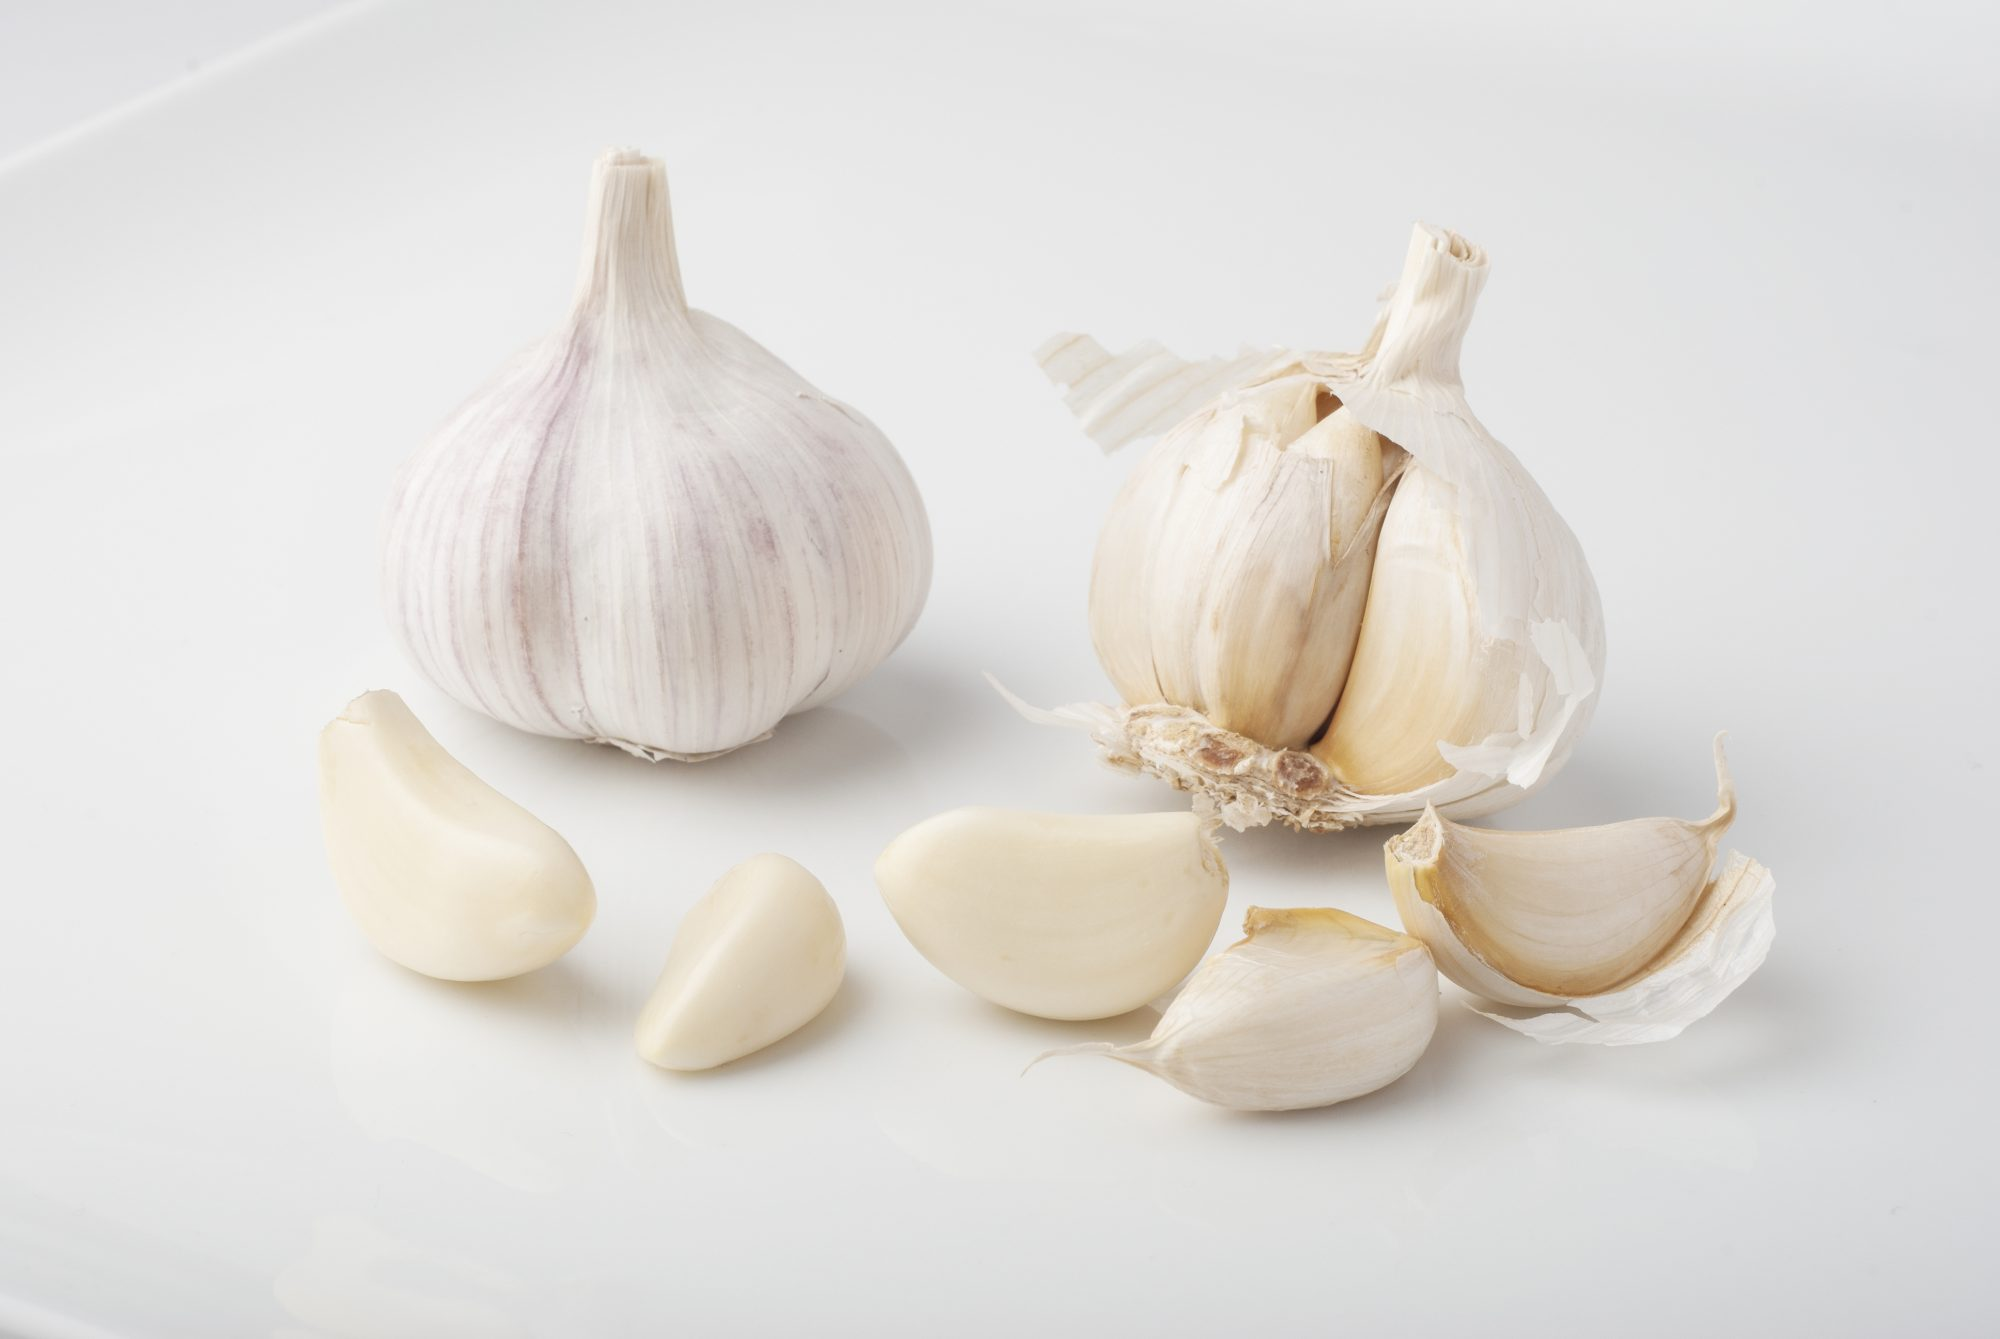 What Is a Clove of Garlic? | Allrecipes